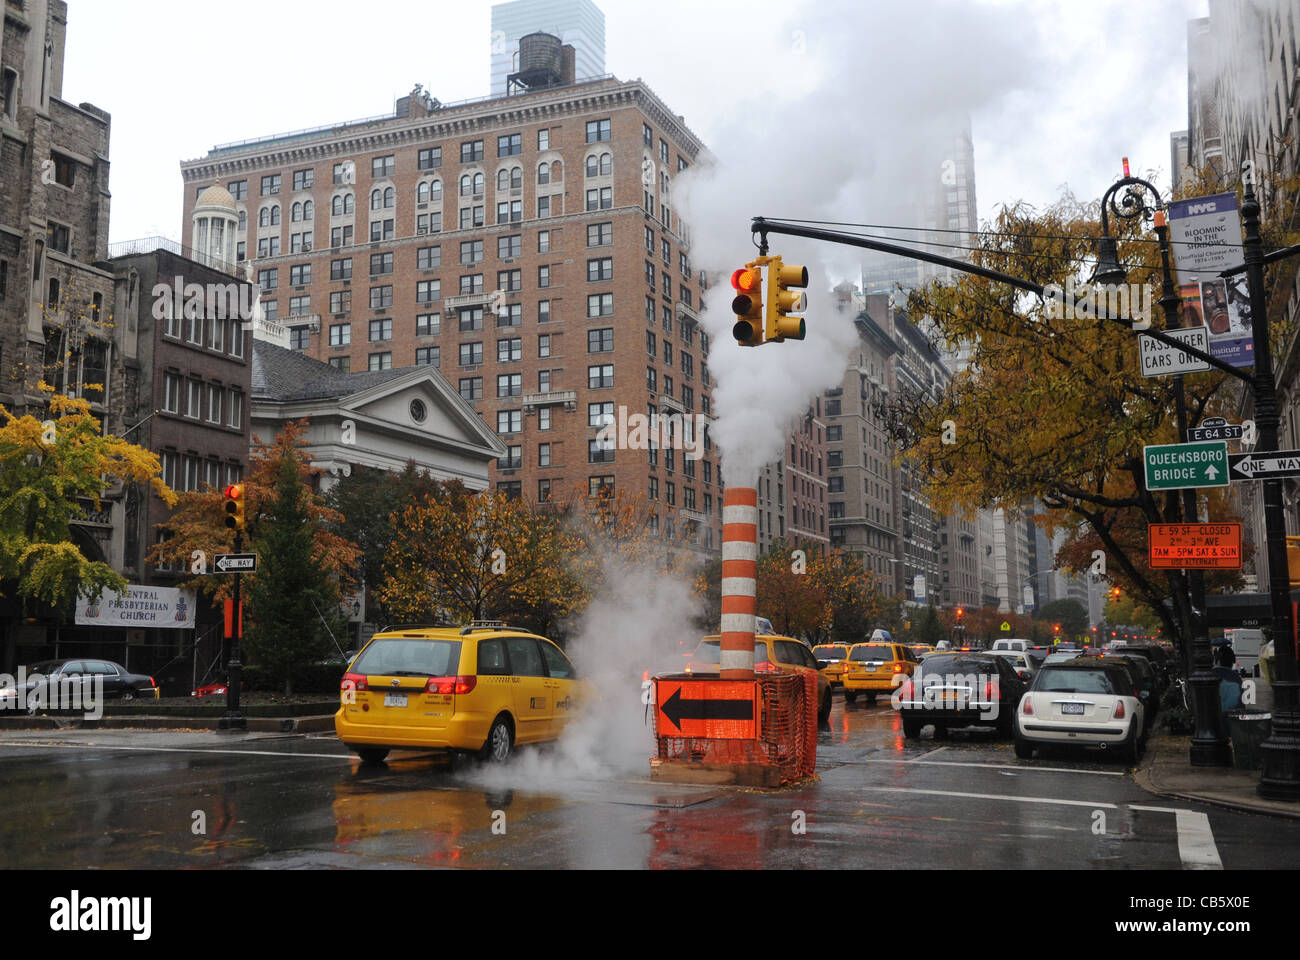 Steam rises from a standpipe in road on wet day Manhattan New York NYC USA - Stock Image